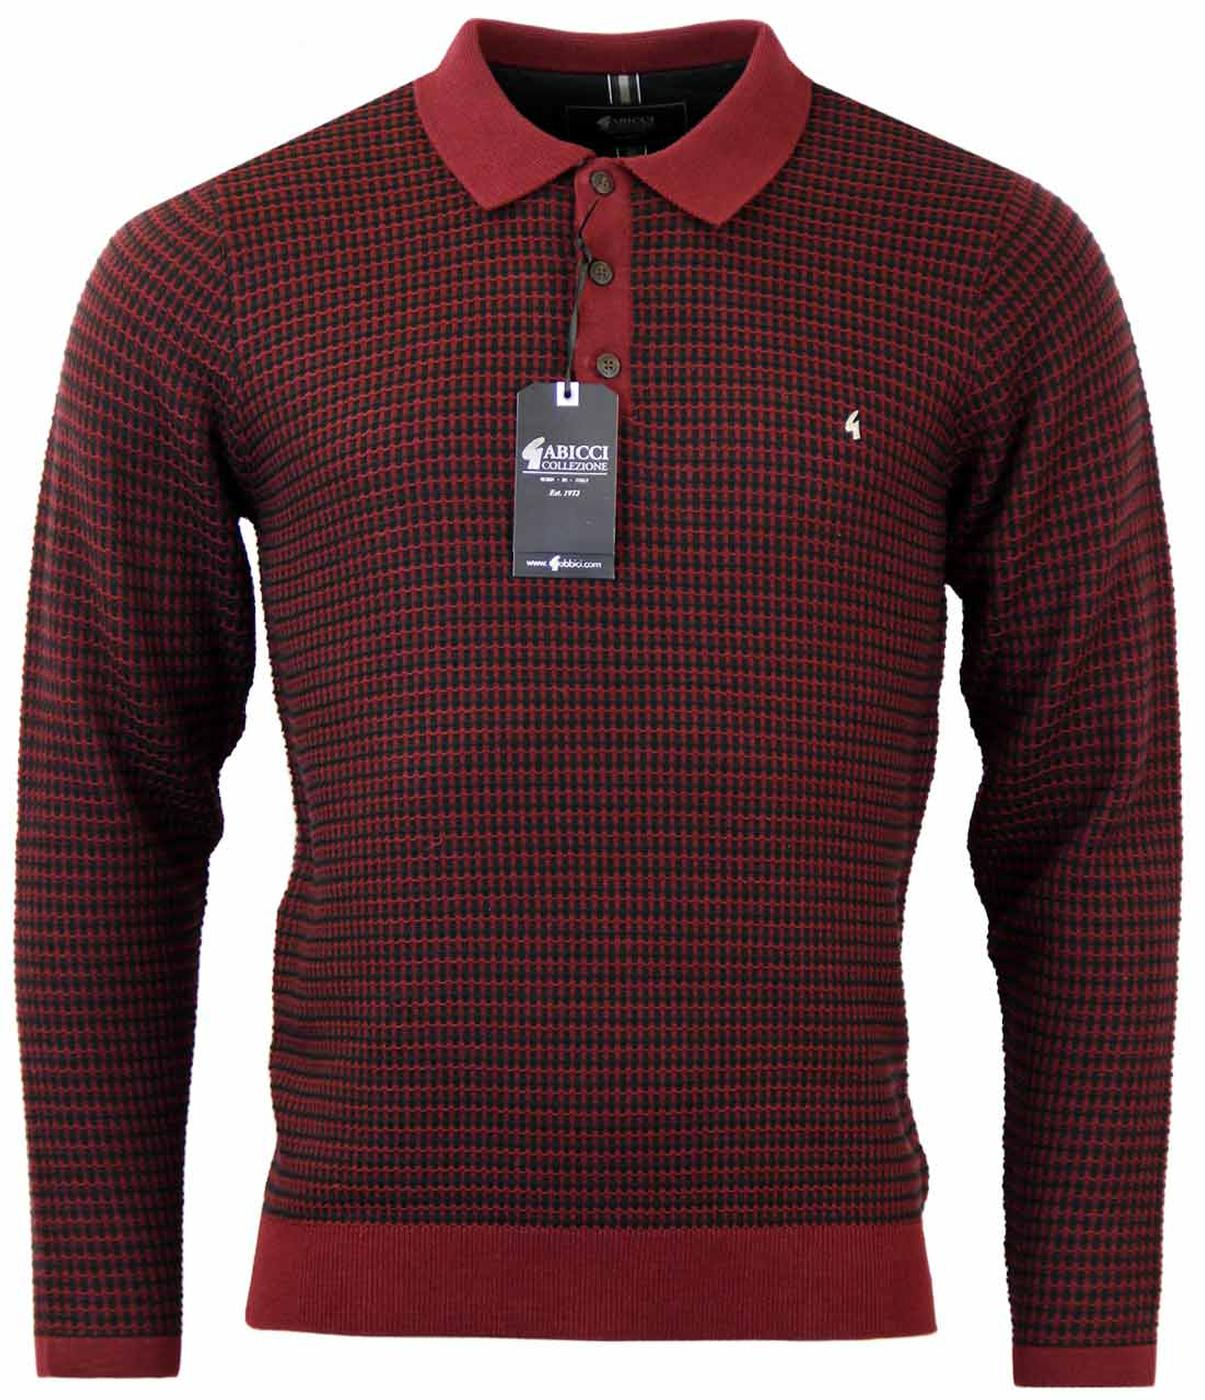 GABICCI VINTAGE Lattice Weave Retro Mod Knit Polo